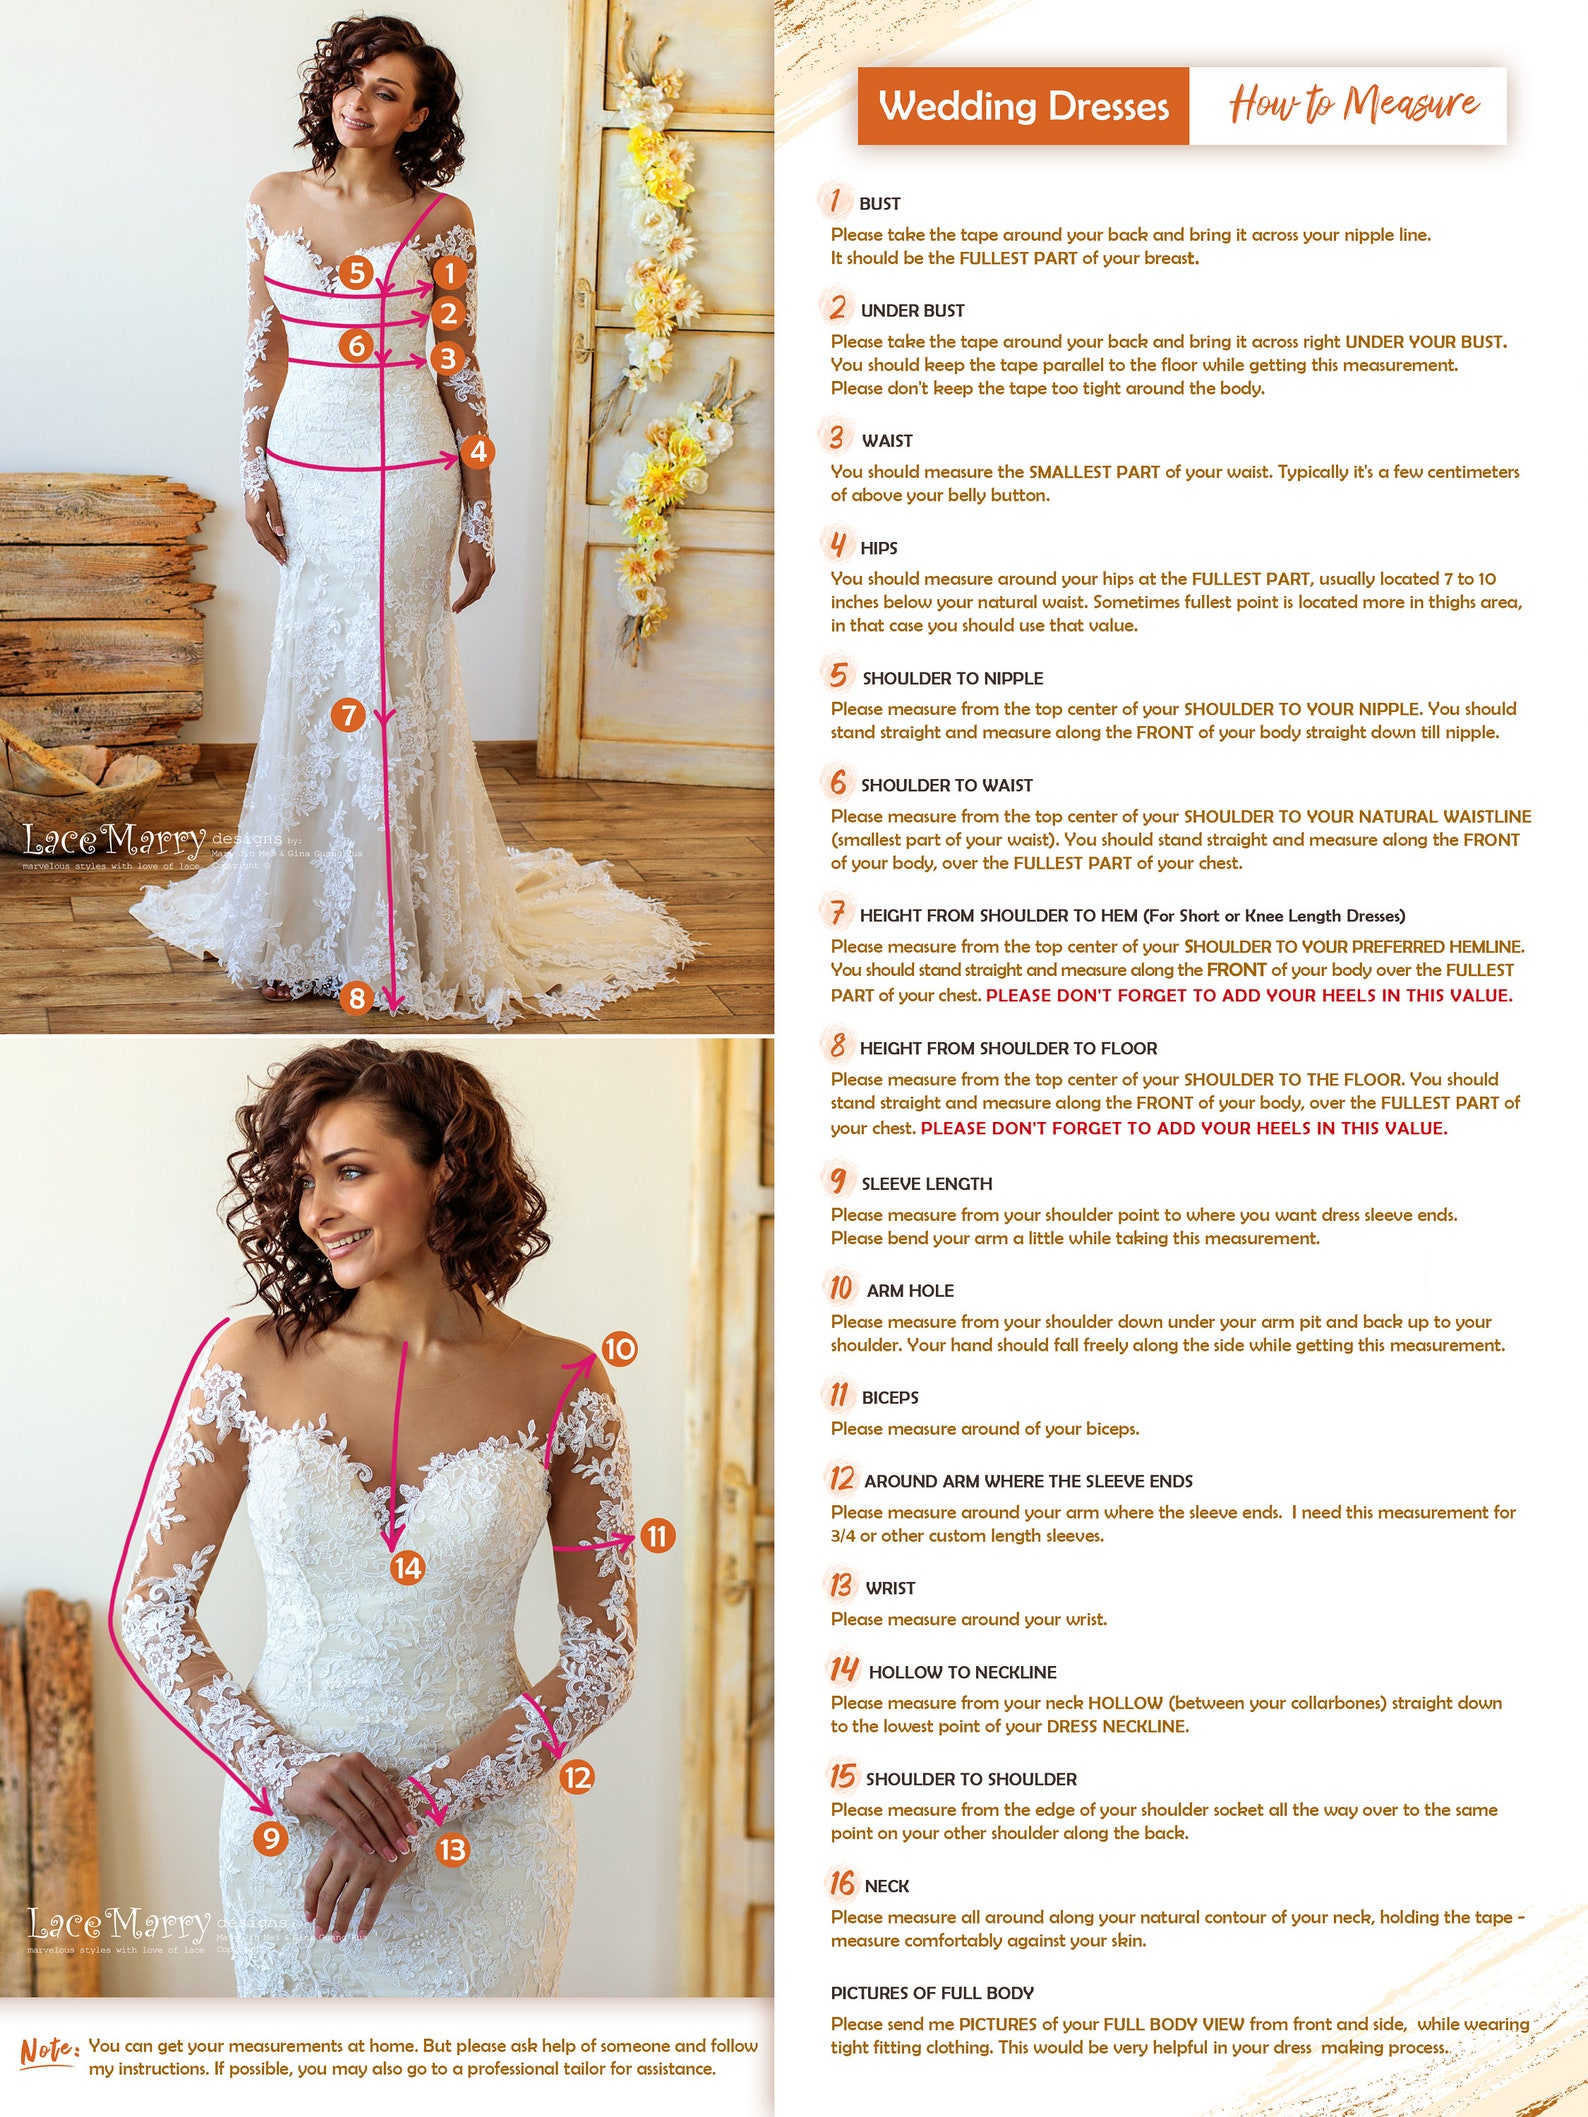 Rush Service Priority and Express shipping for Your Beautiful Dress